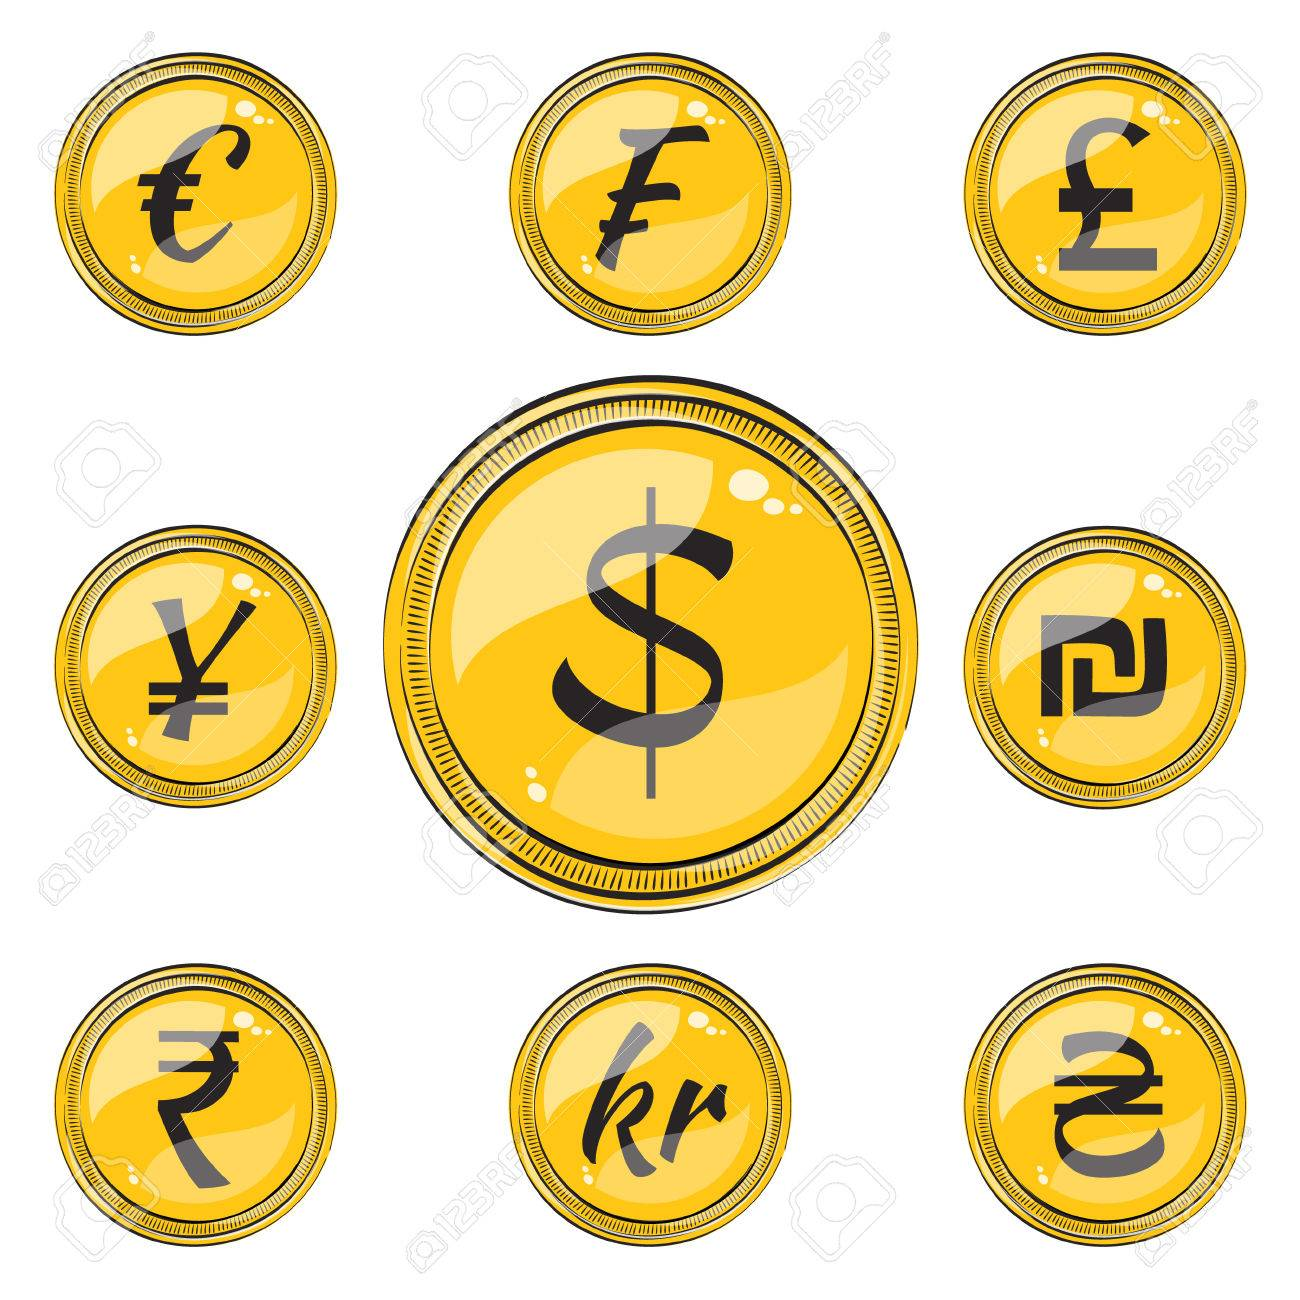 Set Of Coins With Symbols Of 9 Currencies Flat Style Icons Royalty